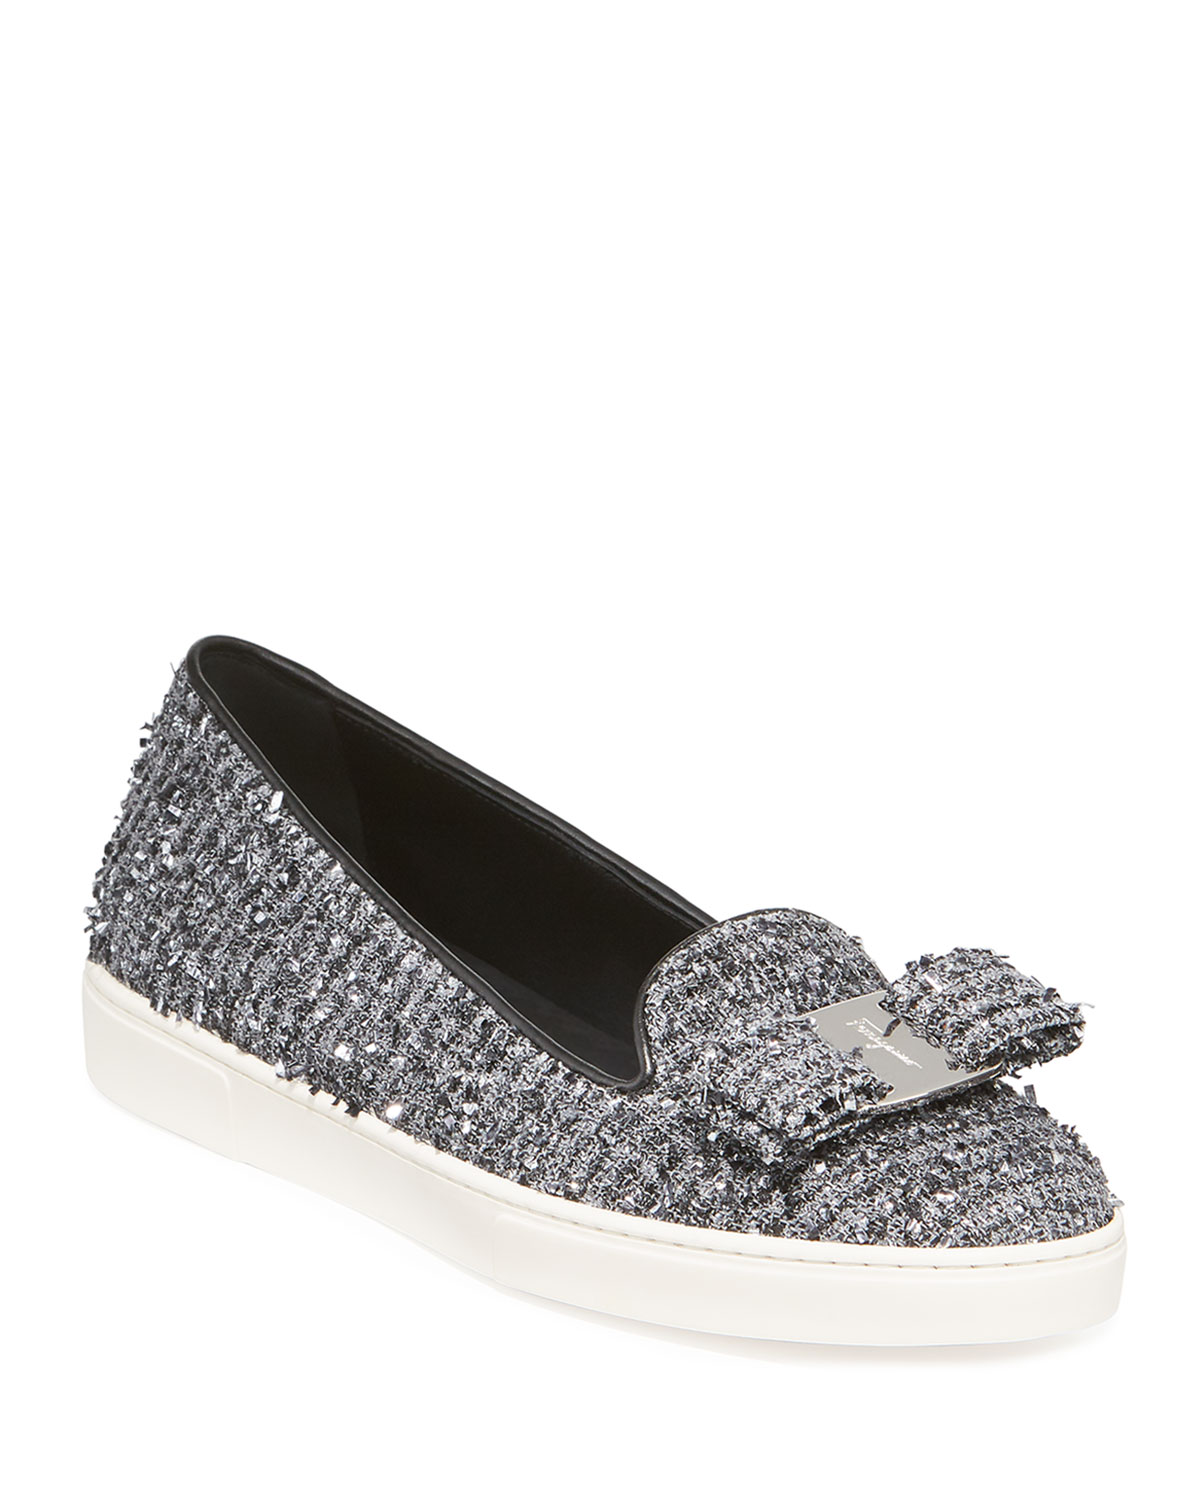 Novello Tweed Vara Bow Slip-On Flats